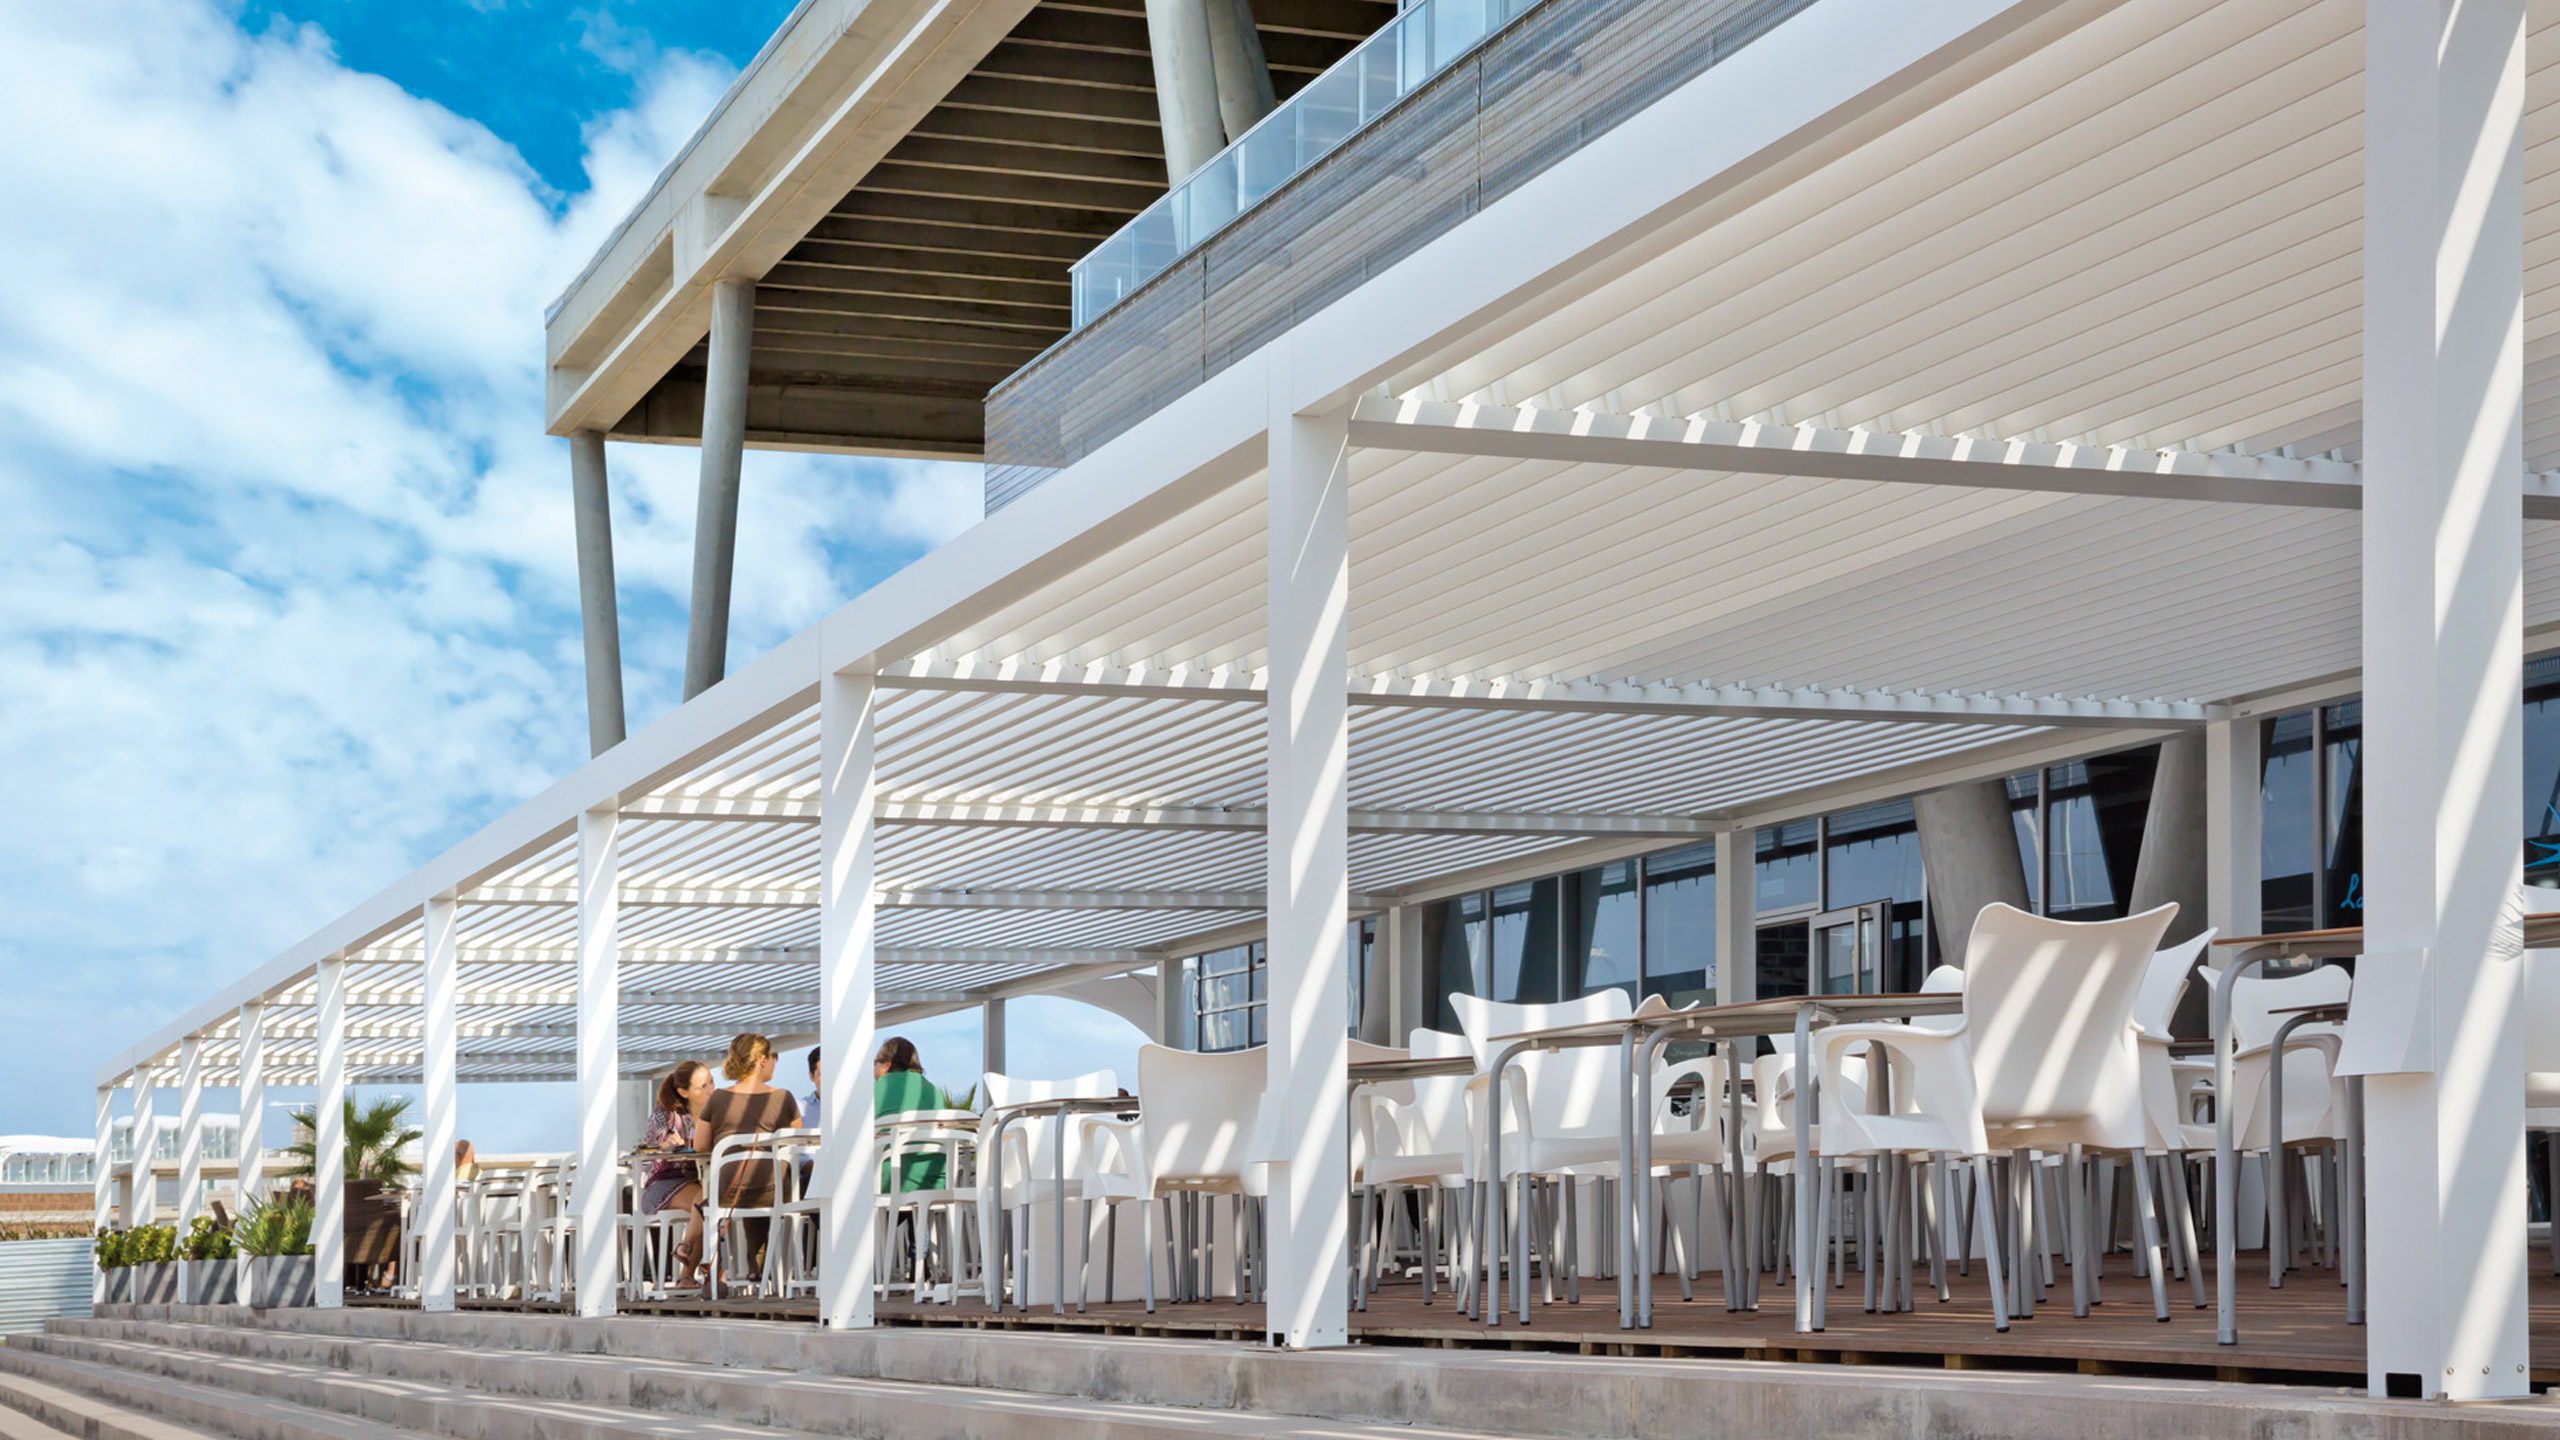 Baleària chooses the Bioclimatic Pergola